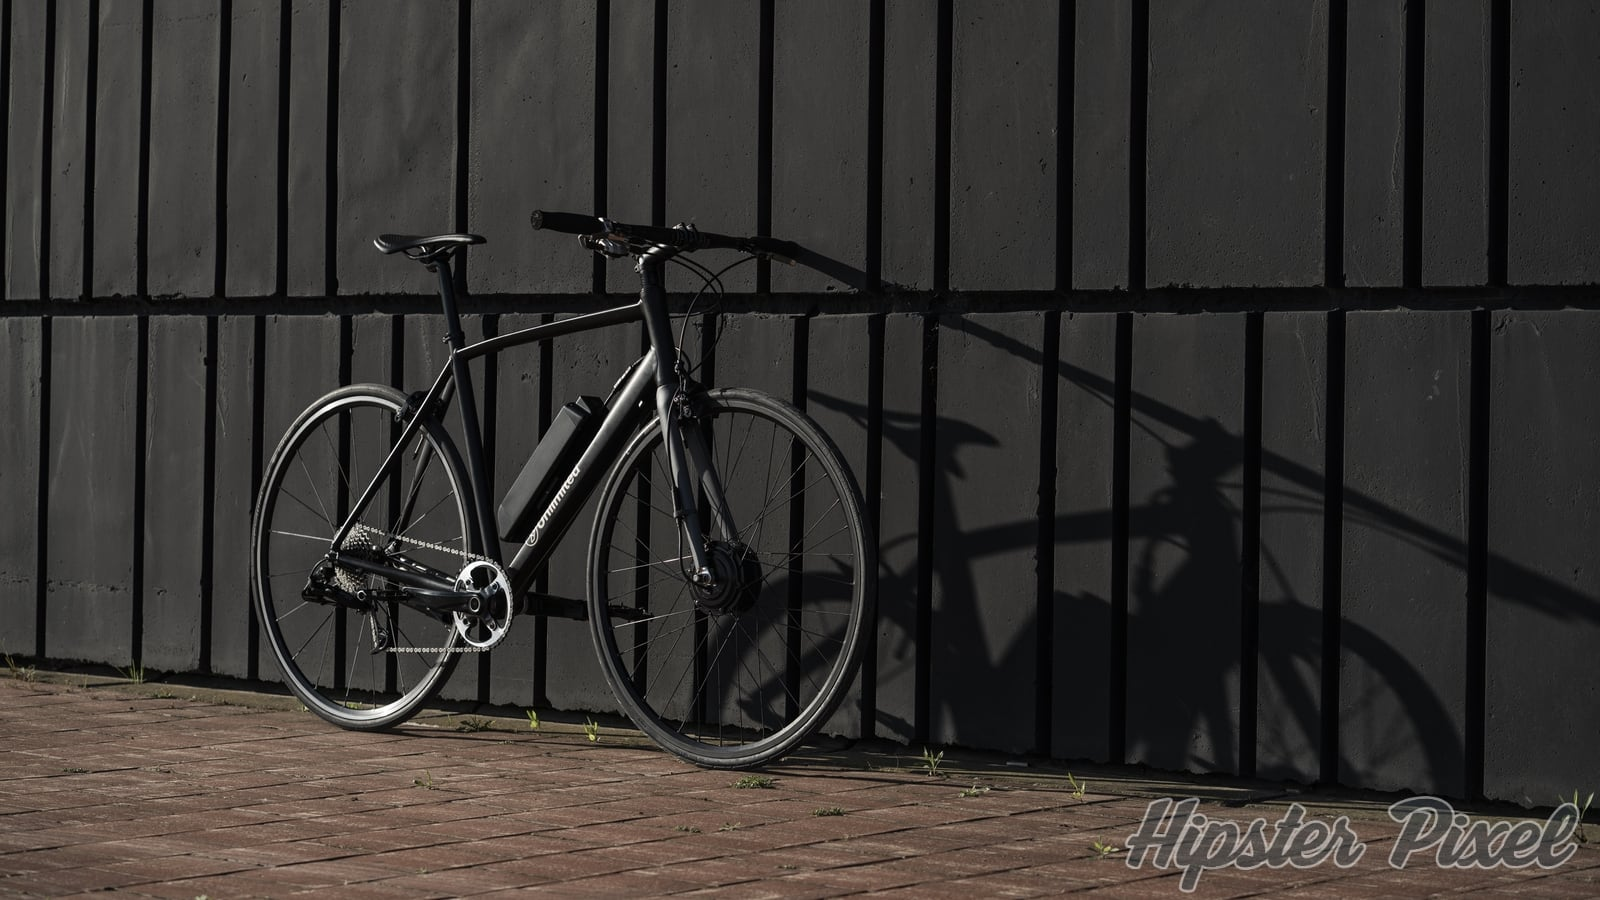 Unlimited to Release an eBike Conversion Kit!